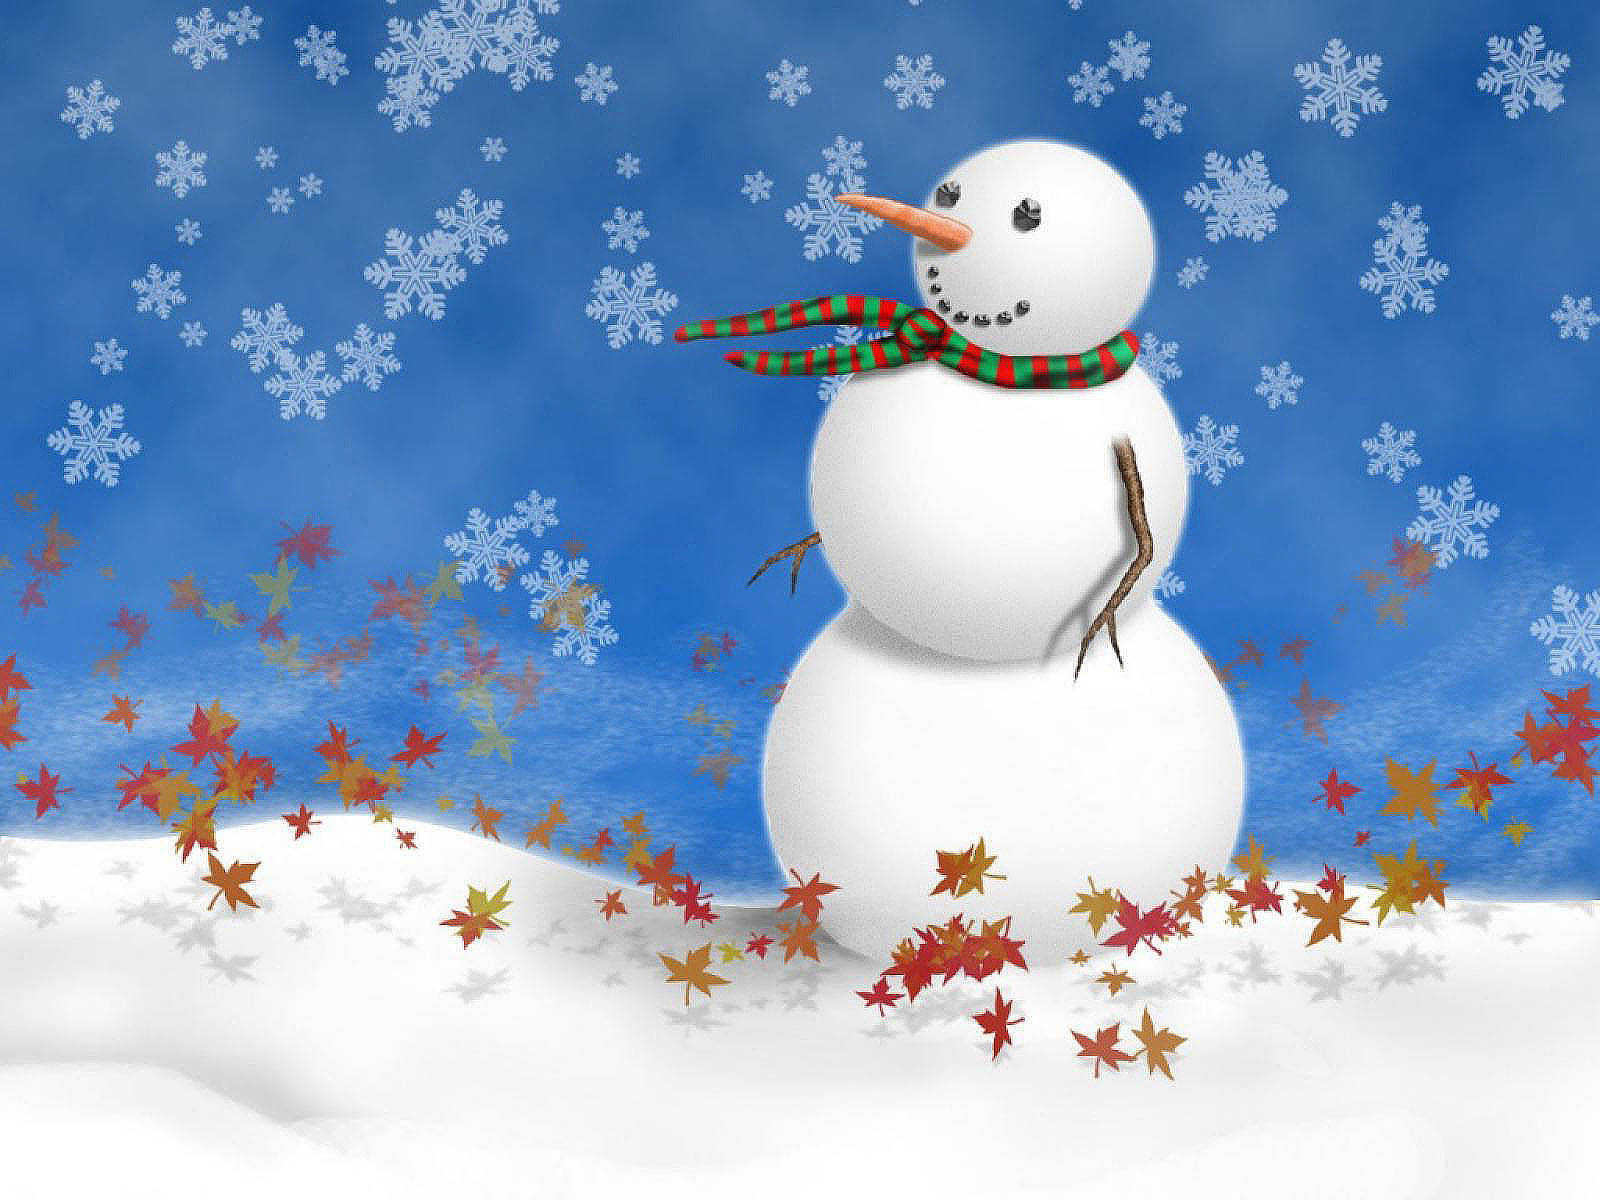 Wallpapers Snowman Desktop Wallpapers And Backgrounds